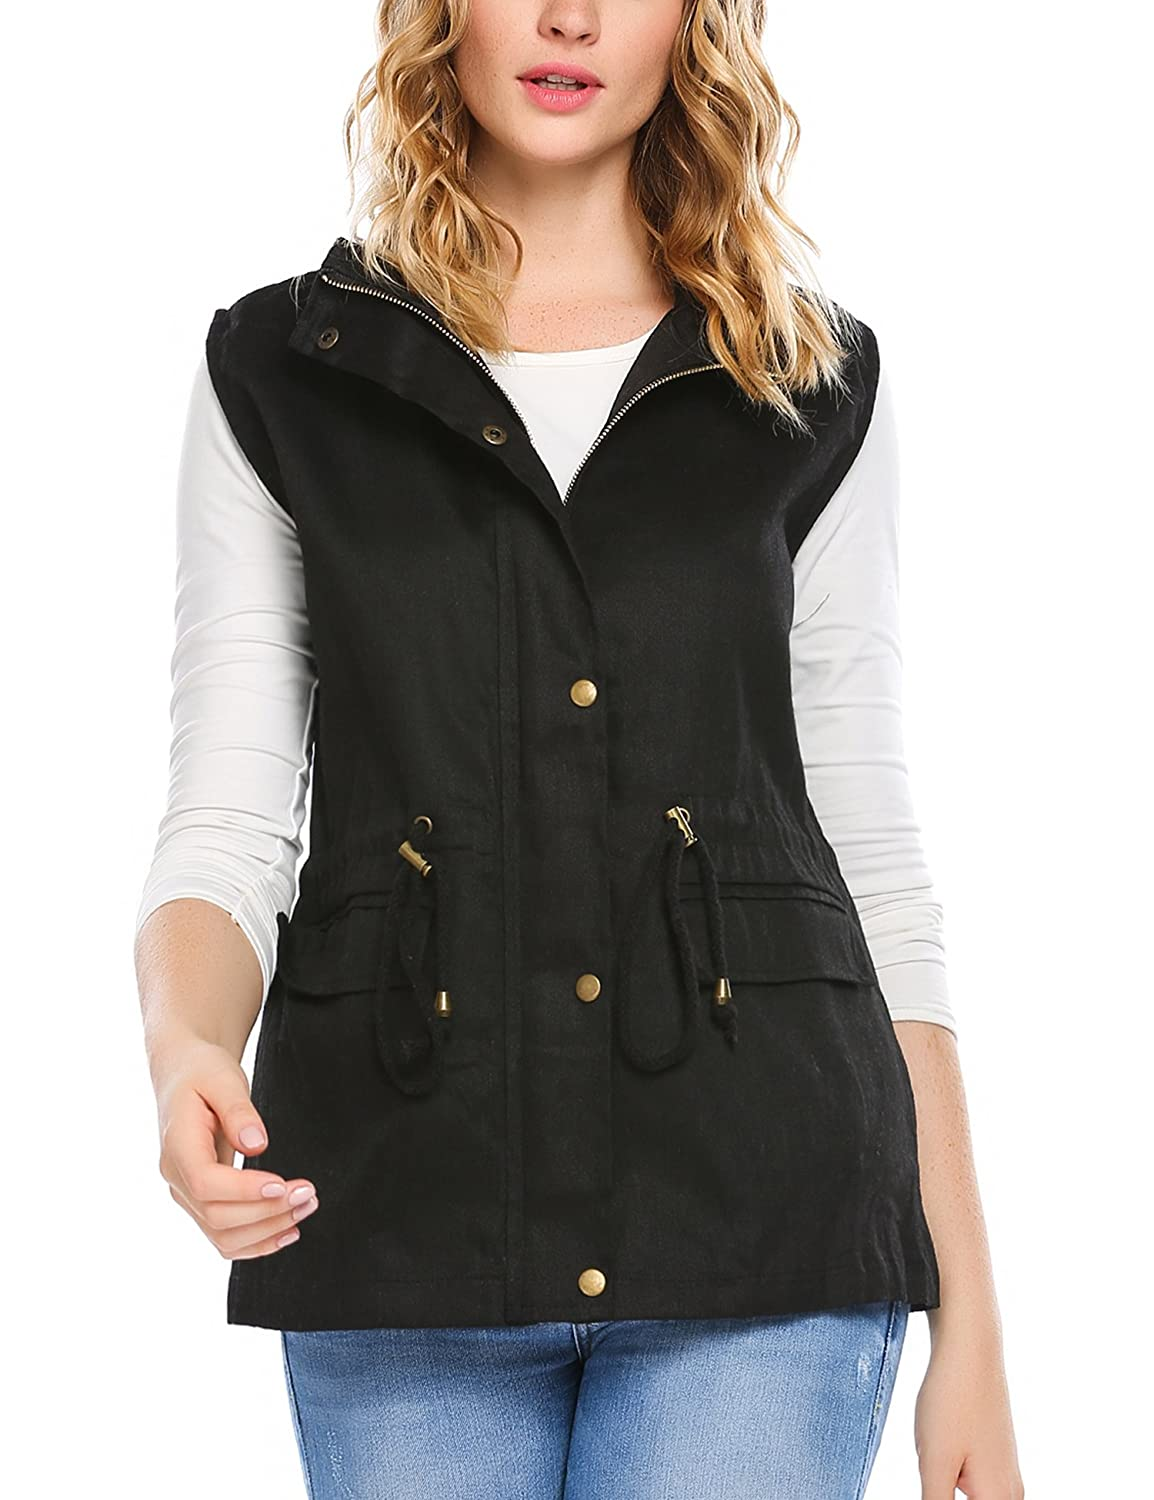 e157c8a864e7f Zeagoo Womens Lightweight Sleeveless Military Safari Utililty Anorak Vest  at Amazon Women s Coats Shop